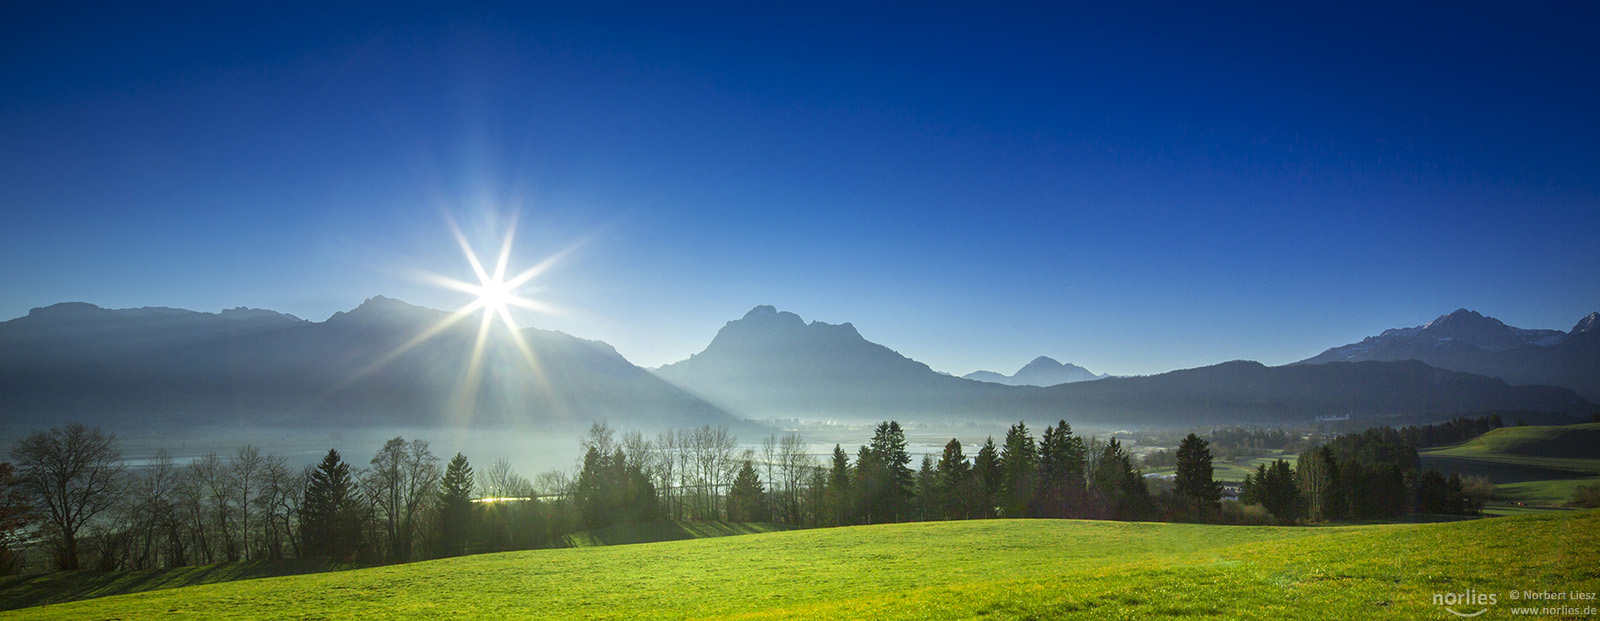 Allgäu - View over Forggensee, Germany